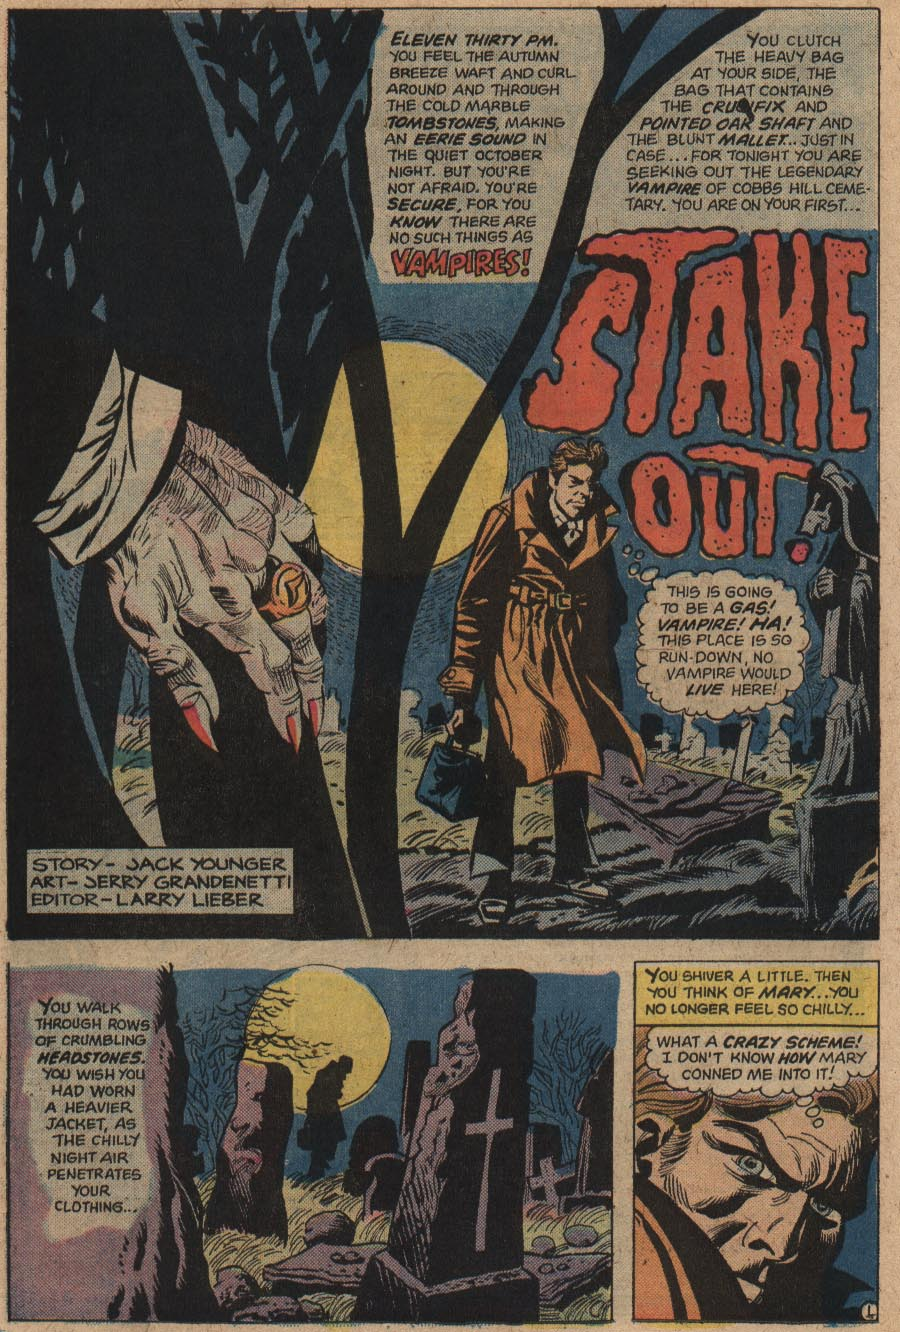 Seaboard's Tales Of Evil #1 (december 1974)? Or Did Editor  Larry